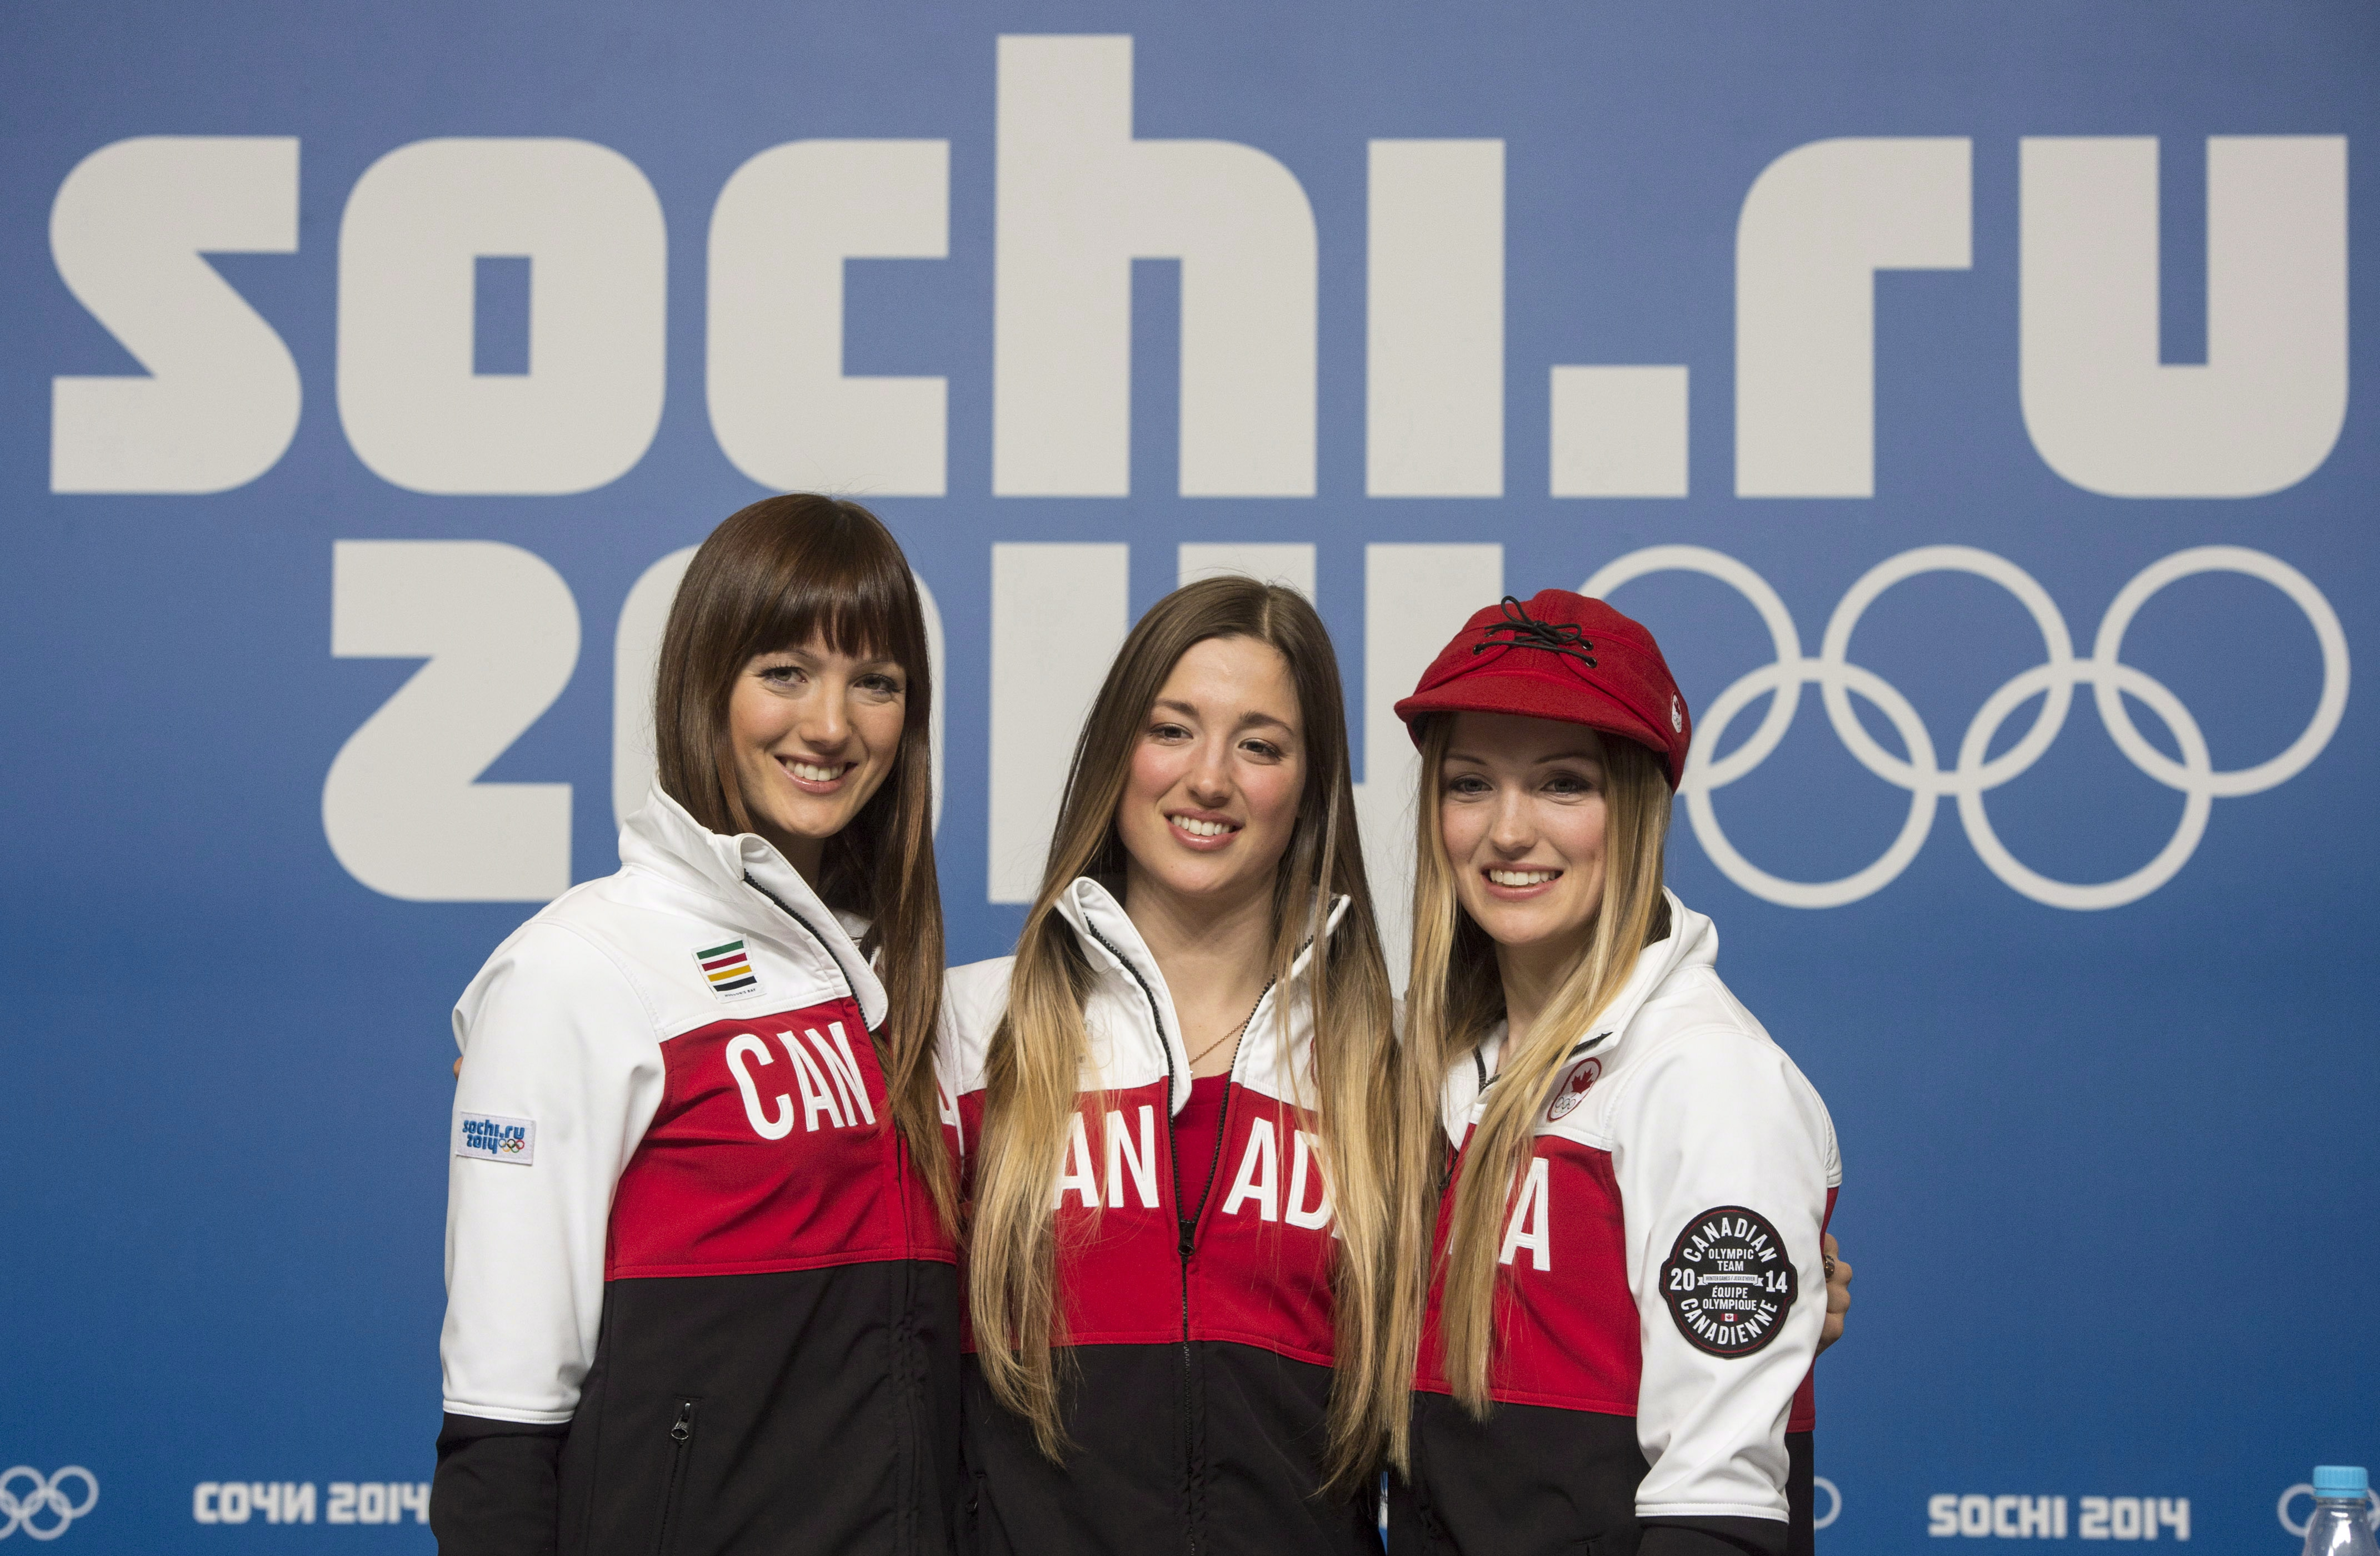 Sisters posing in front of Sochi 2014 Olympic Games sign